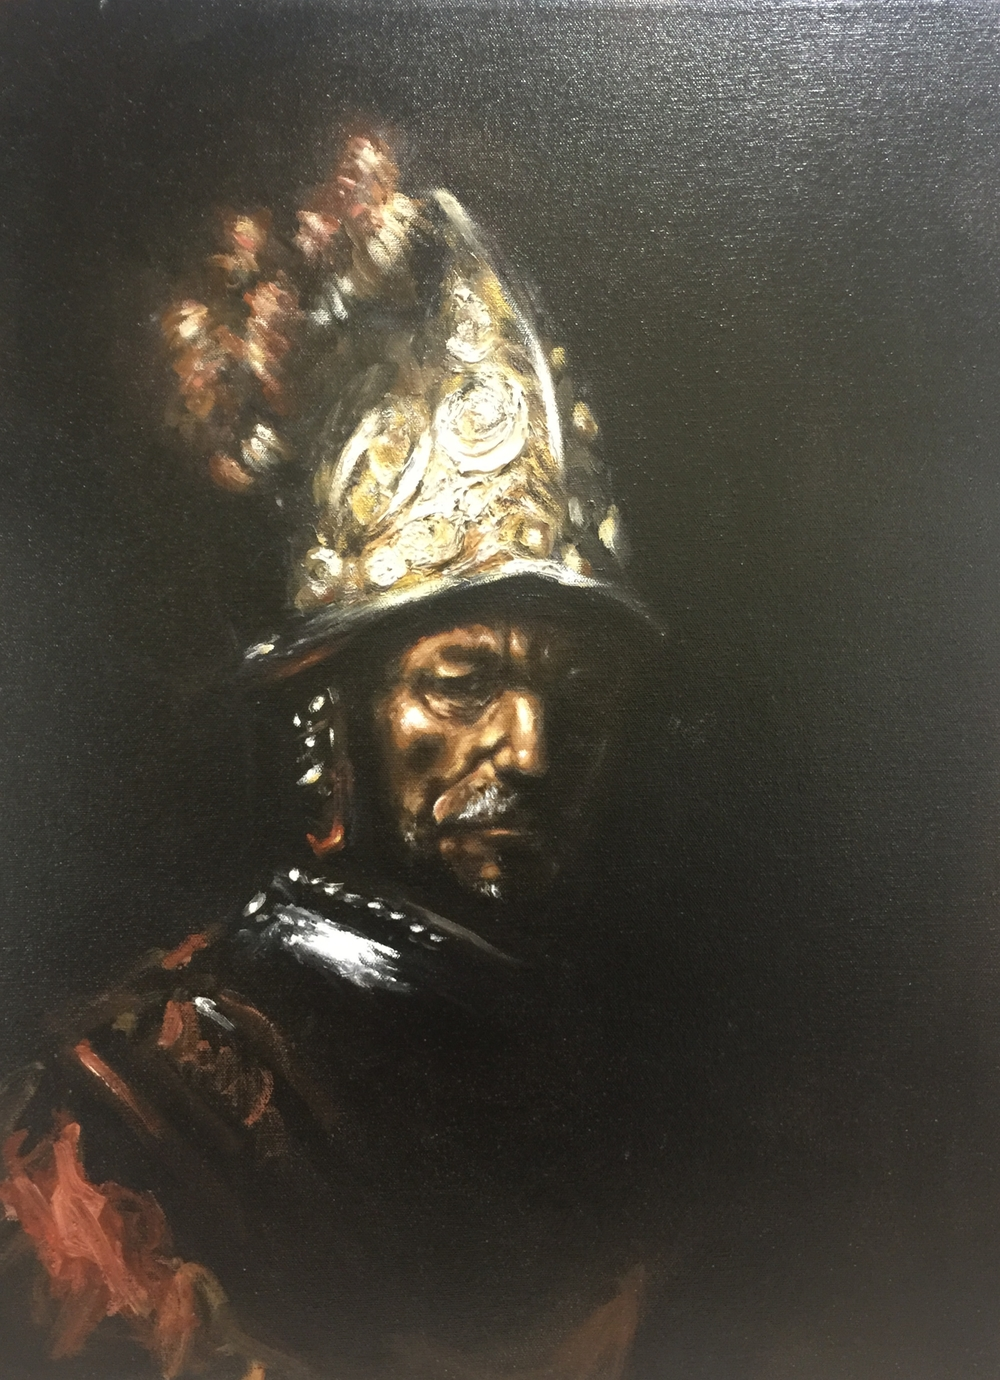 """The Man with the Golden Helmet"" after Rembrandt (2012), oil on canvas, 18"" x 24"""